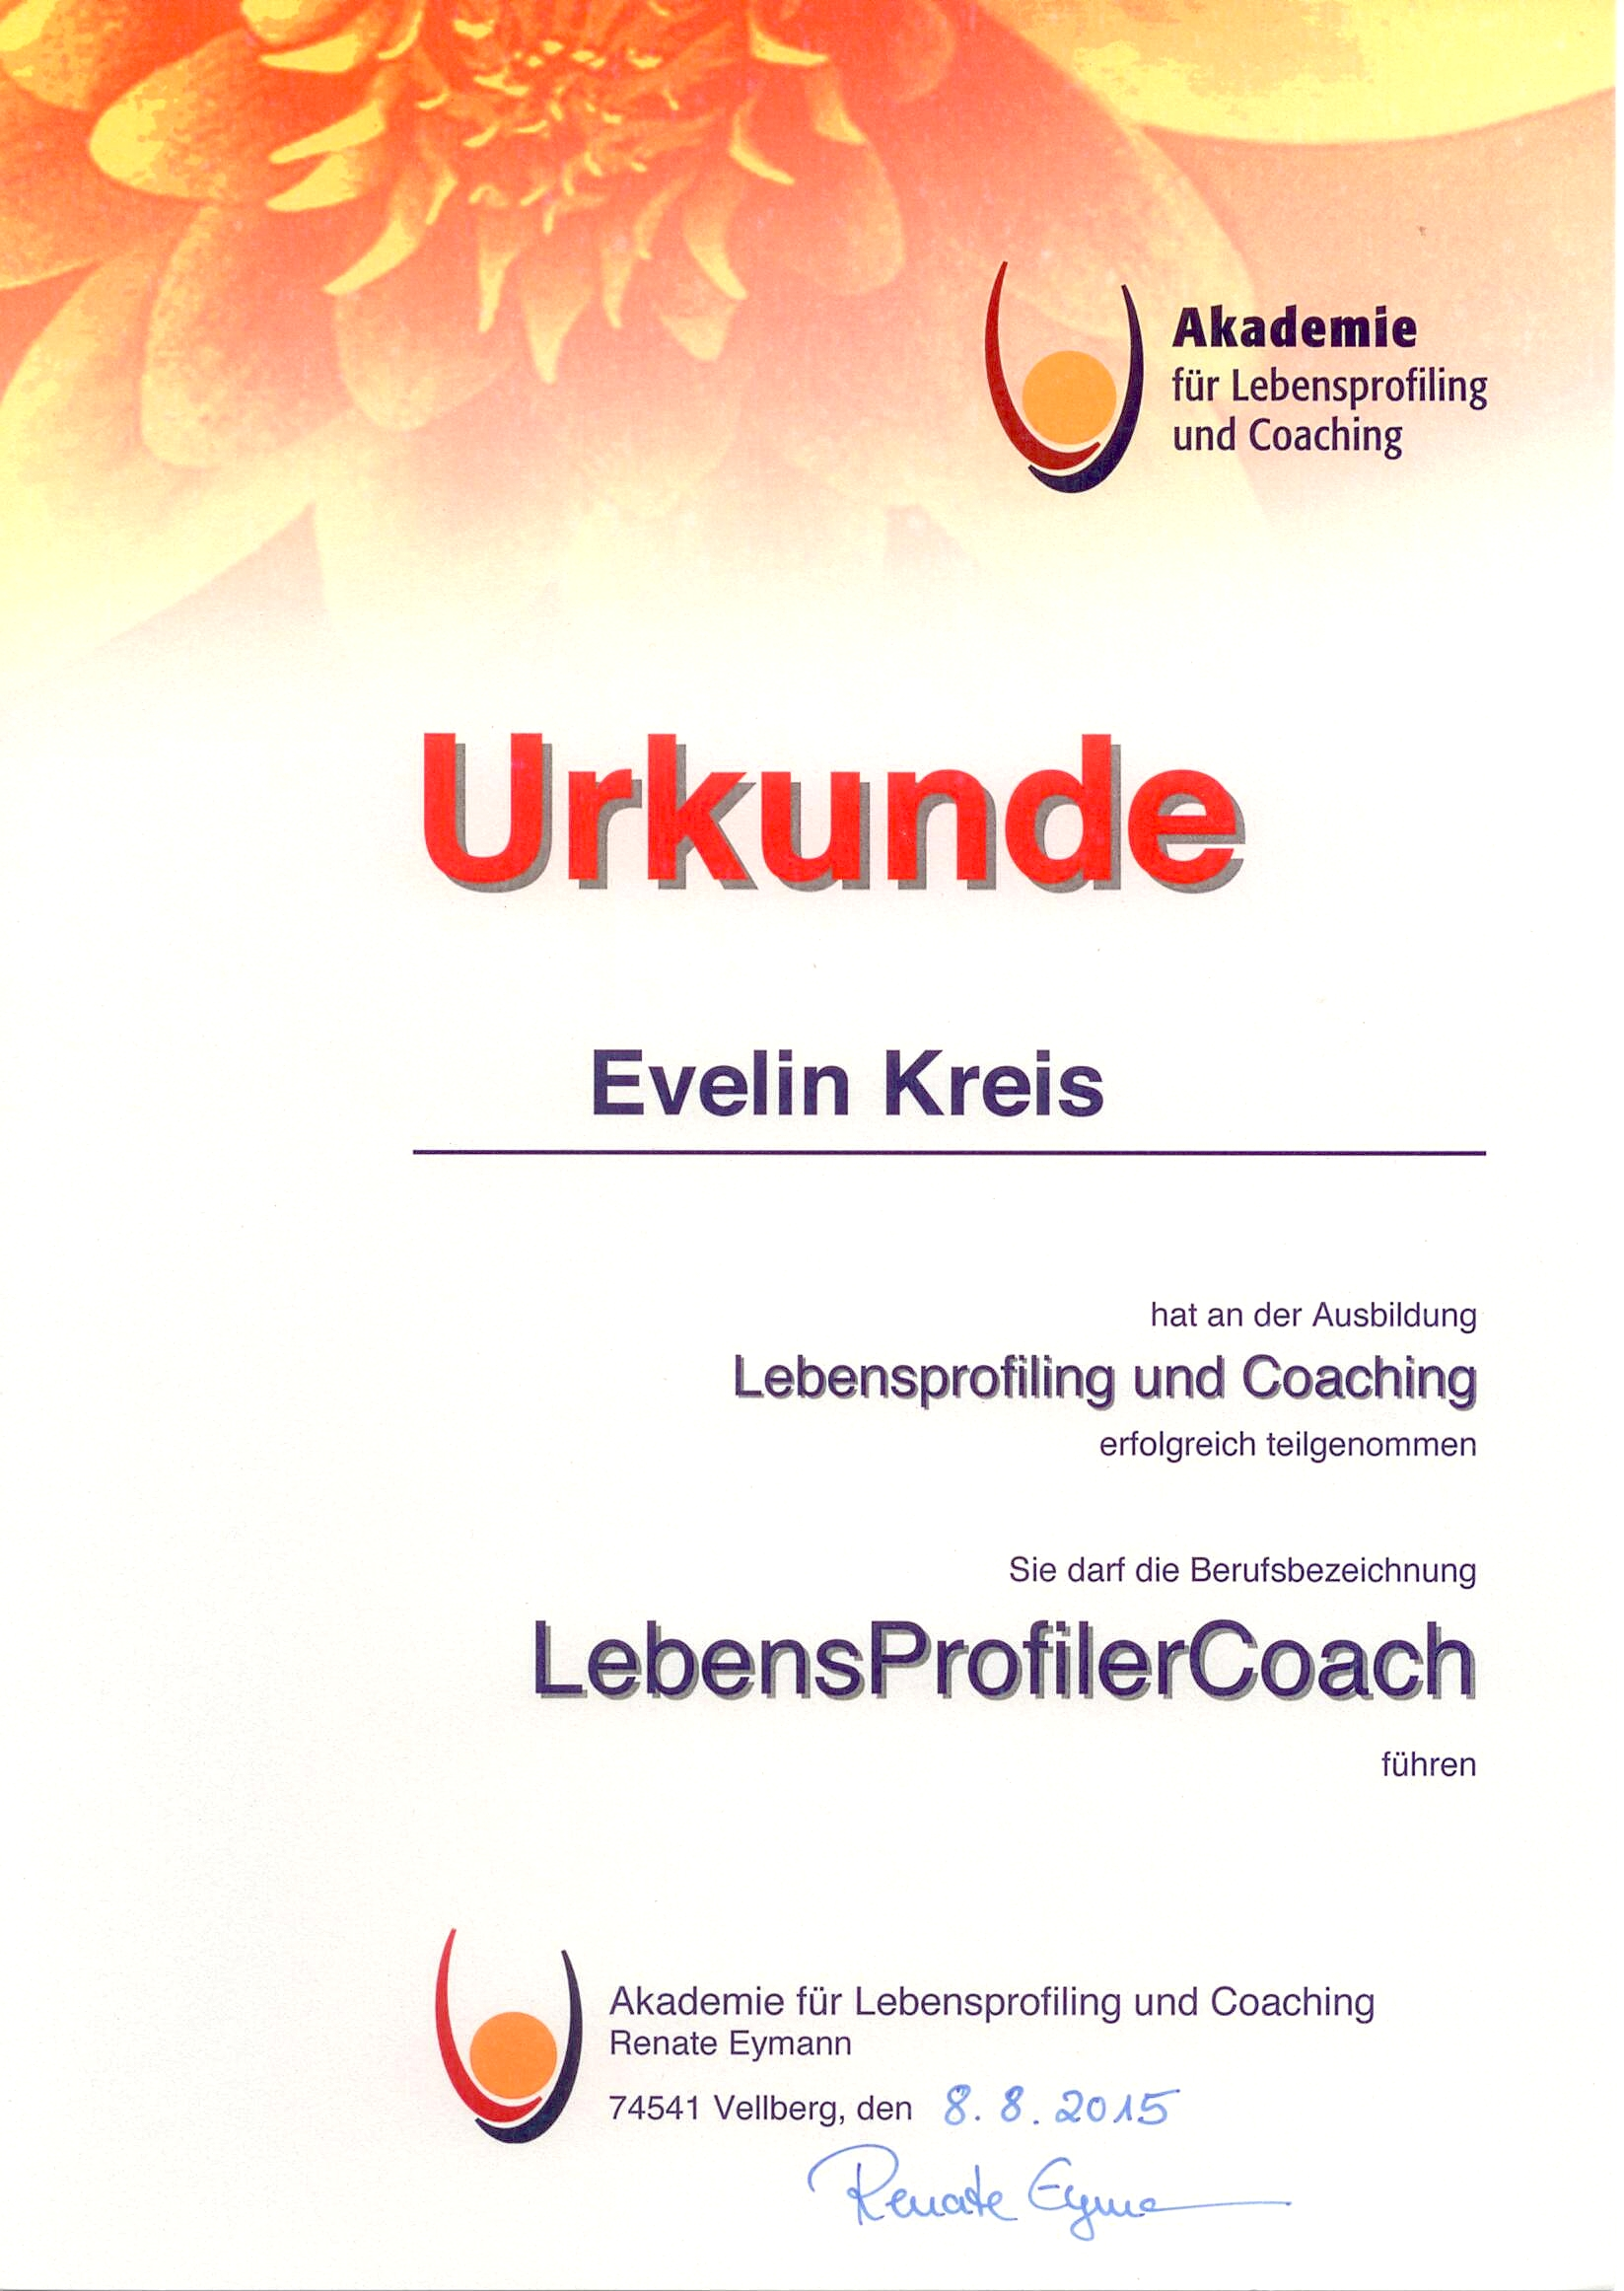 Lebensprofilercoach